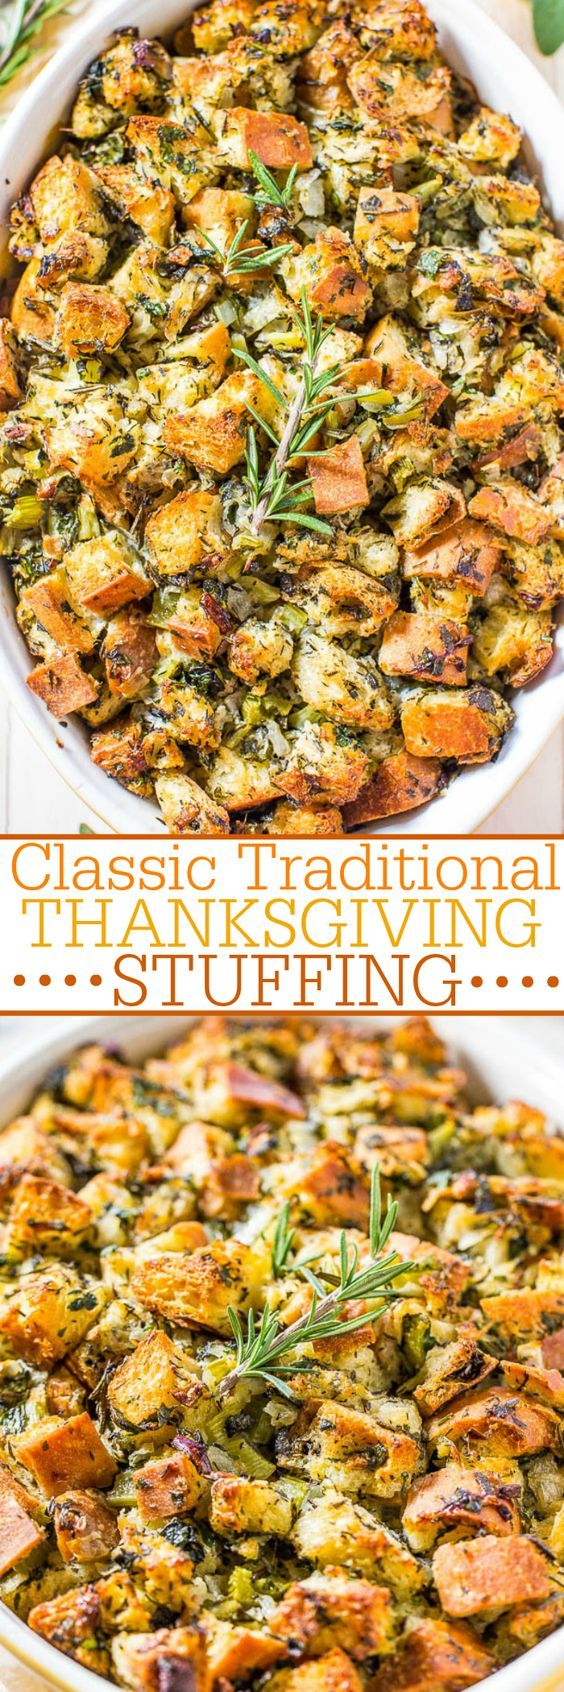 Classic Traditional Thanksgiving Stuffing - Nothing frilly or trendy. Classic, amazing, easy, homemade stuffing that everyone loves! Source: www.averiecooks.com